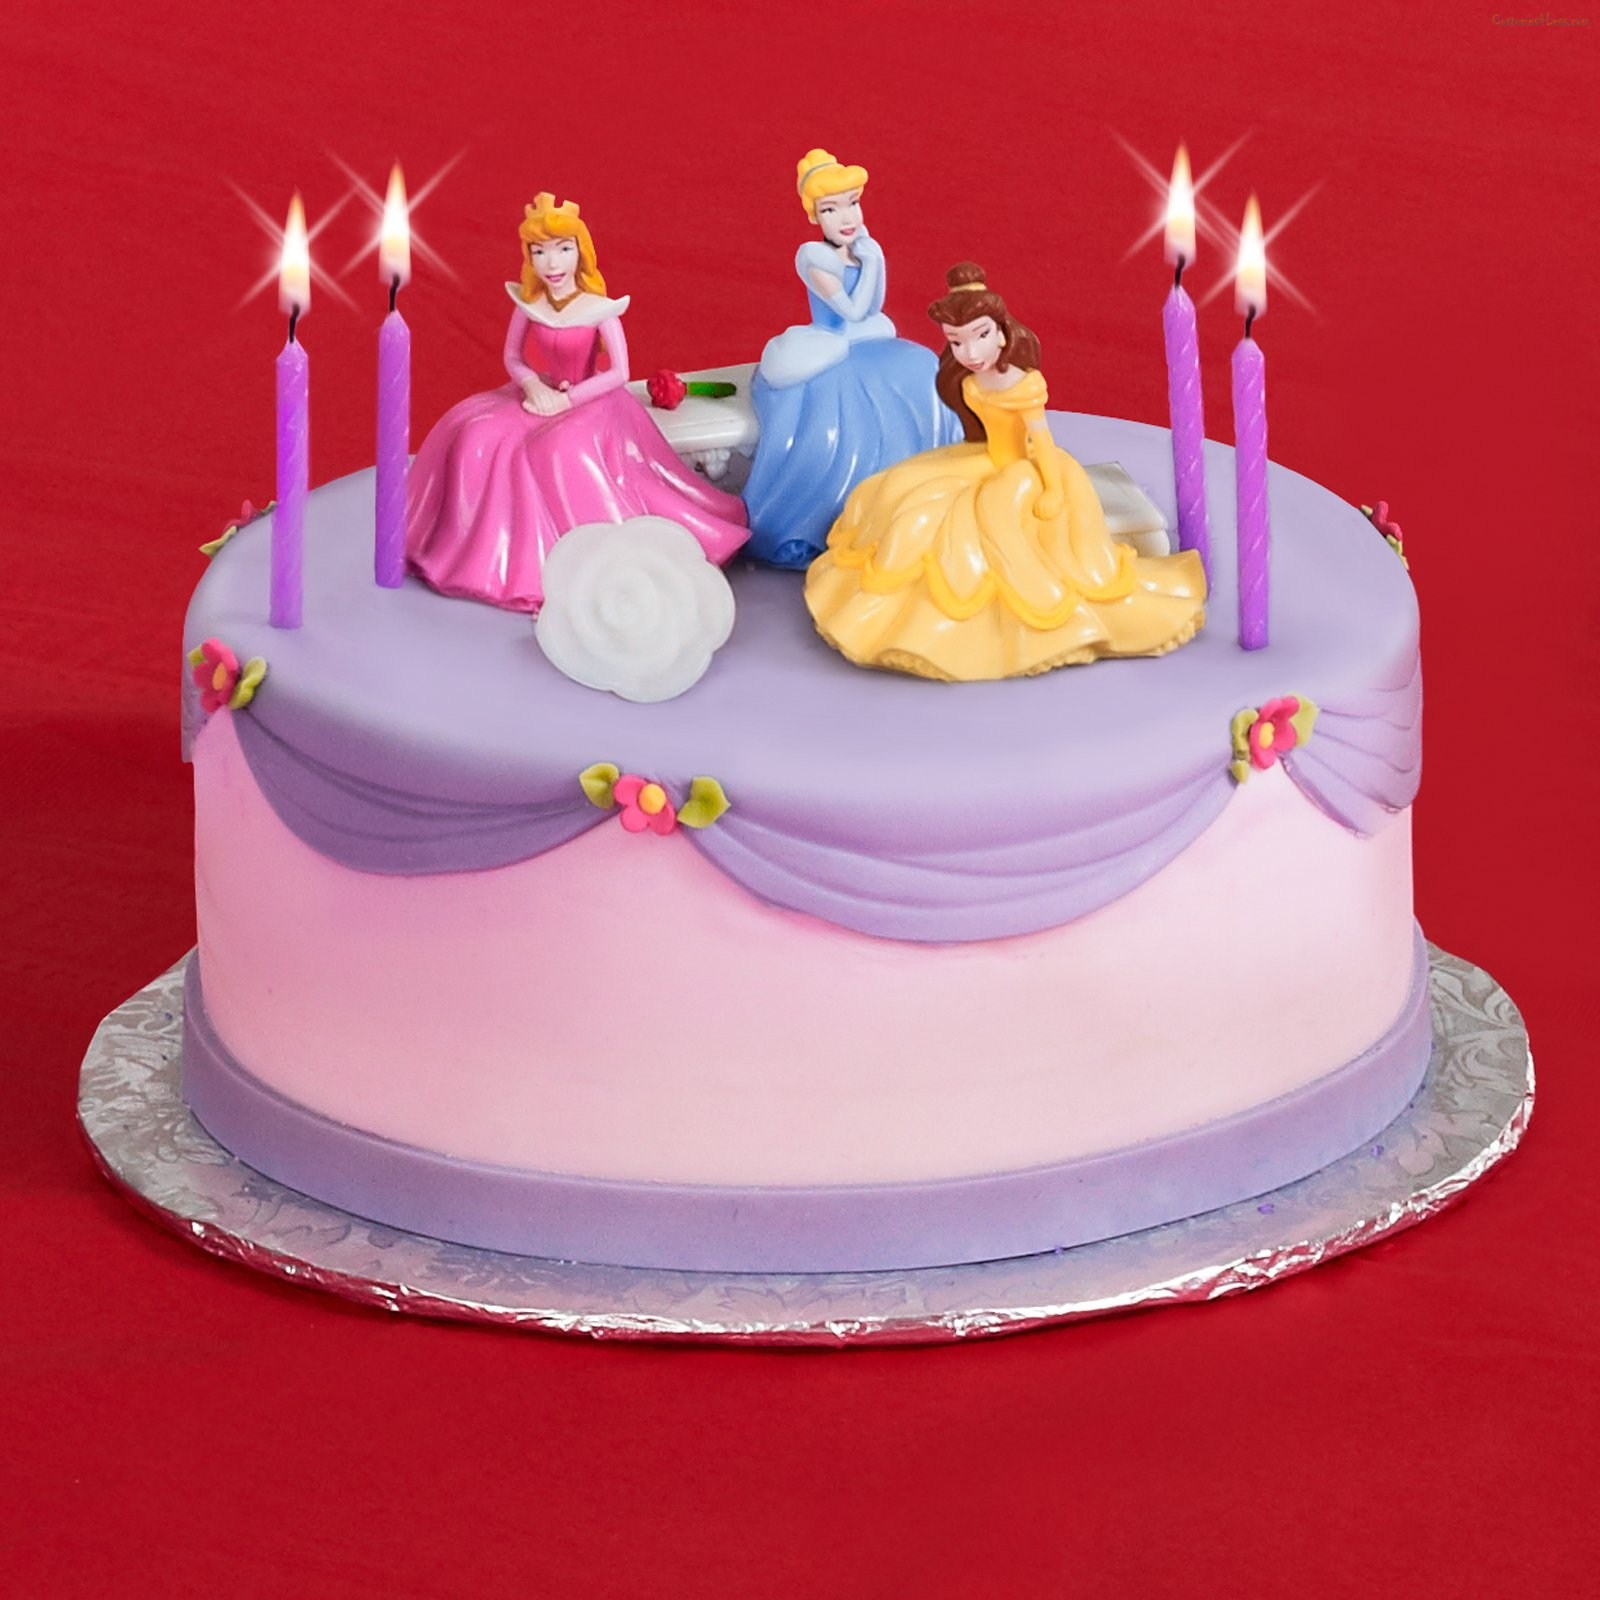 birthday cakes 1st birthday cakes for girls perth and posted at ...